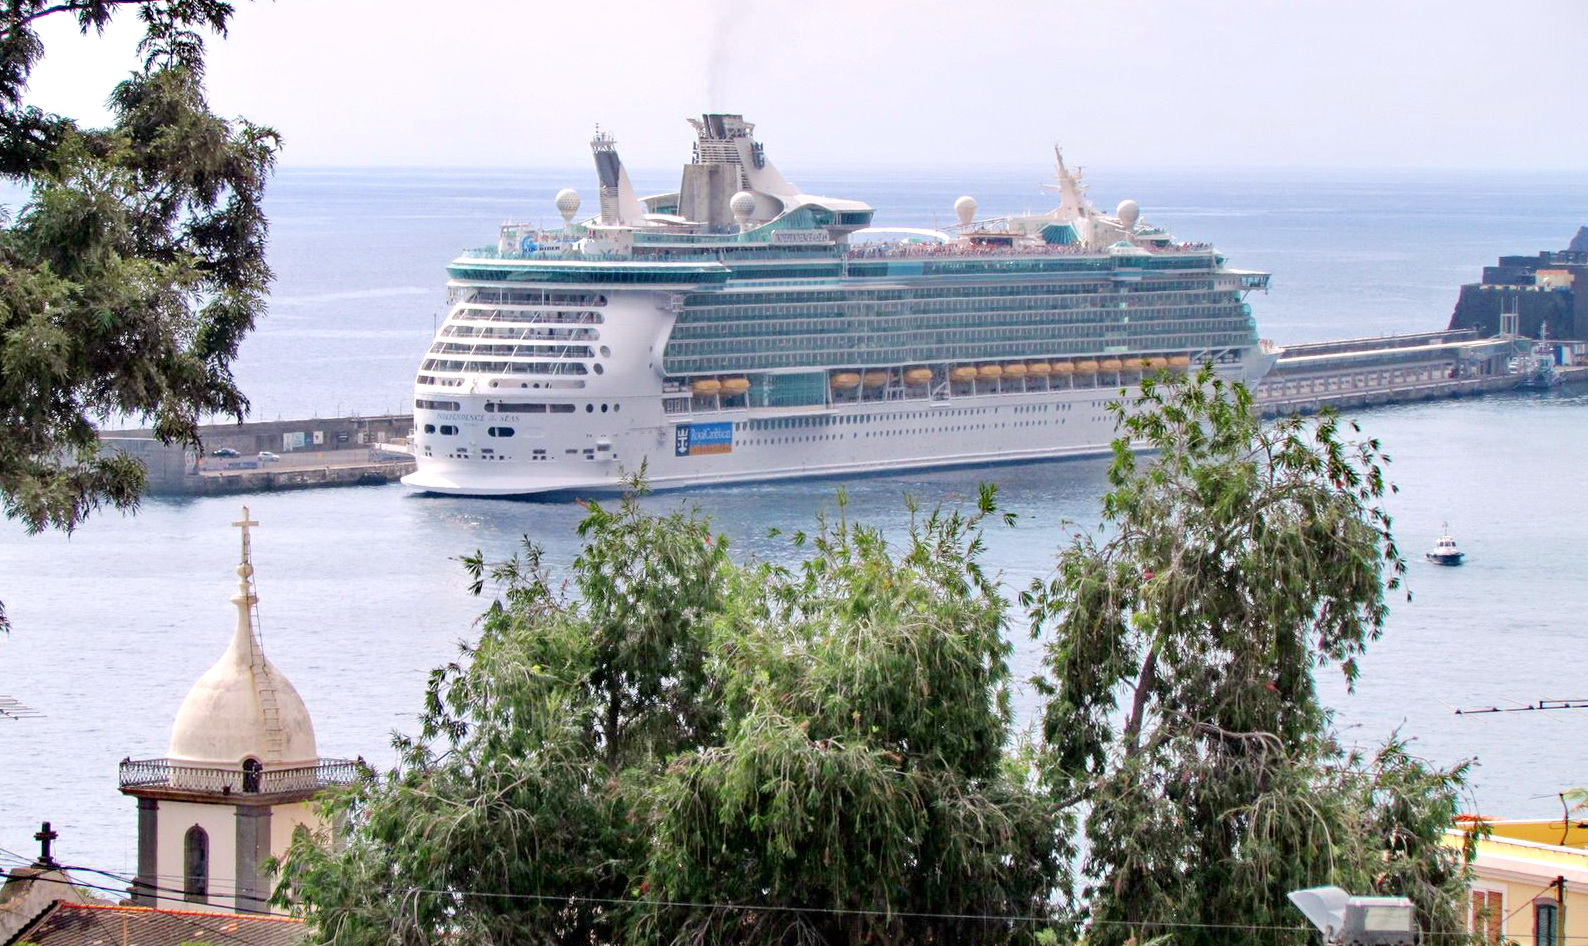 Independence of the Seas in Funchal port